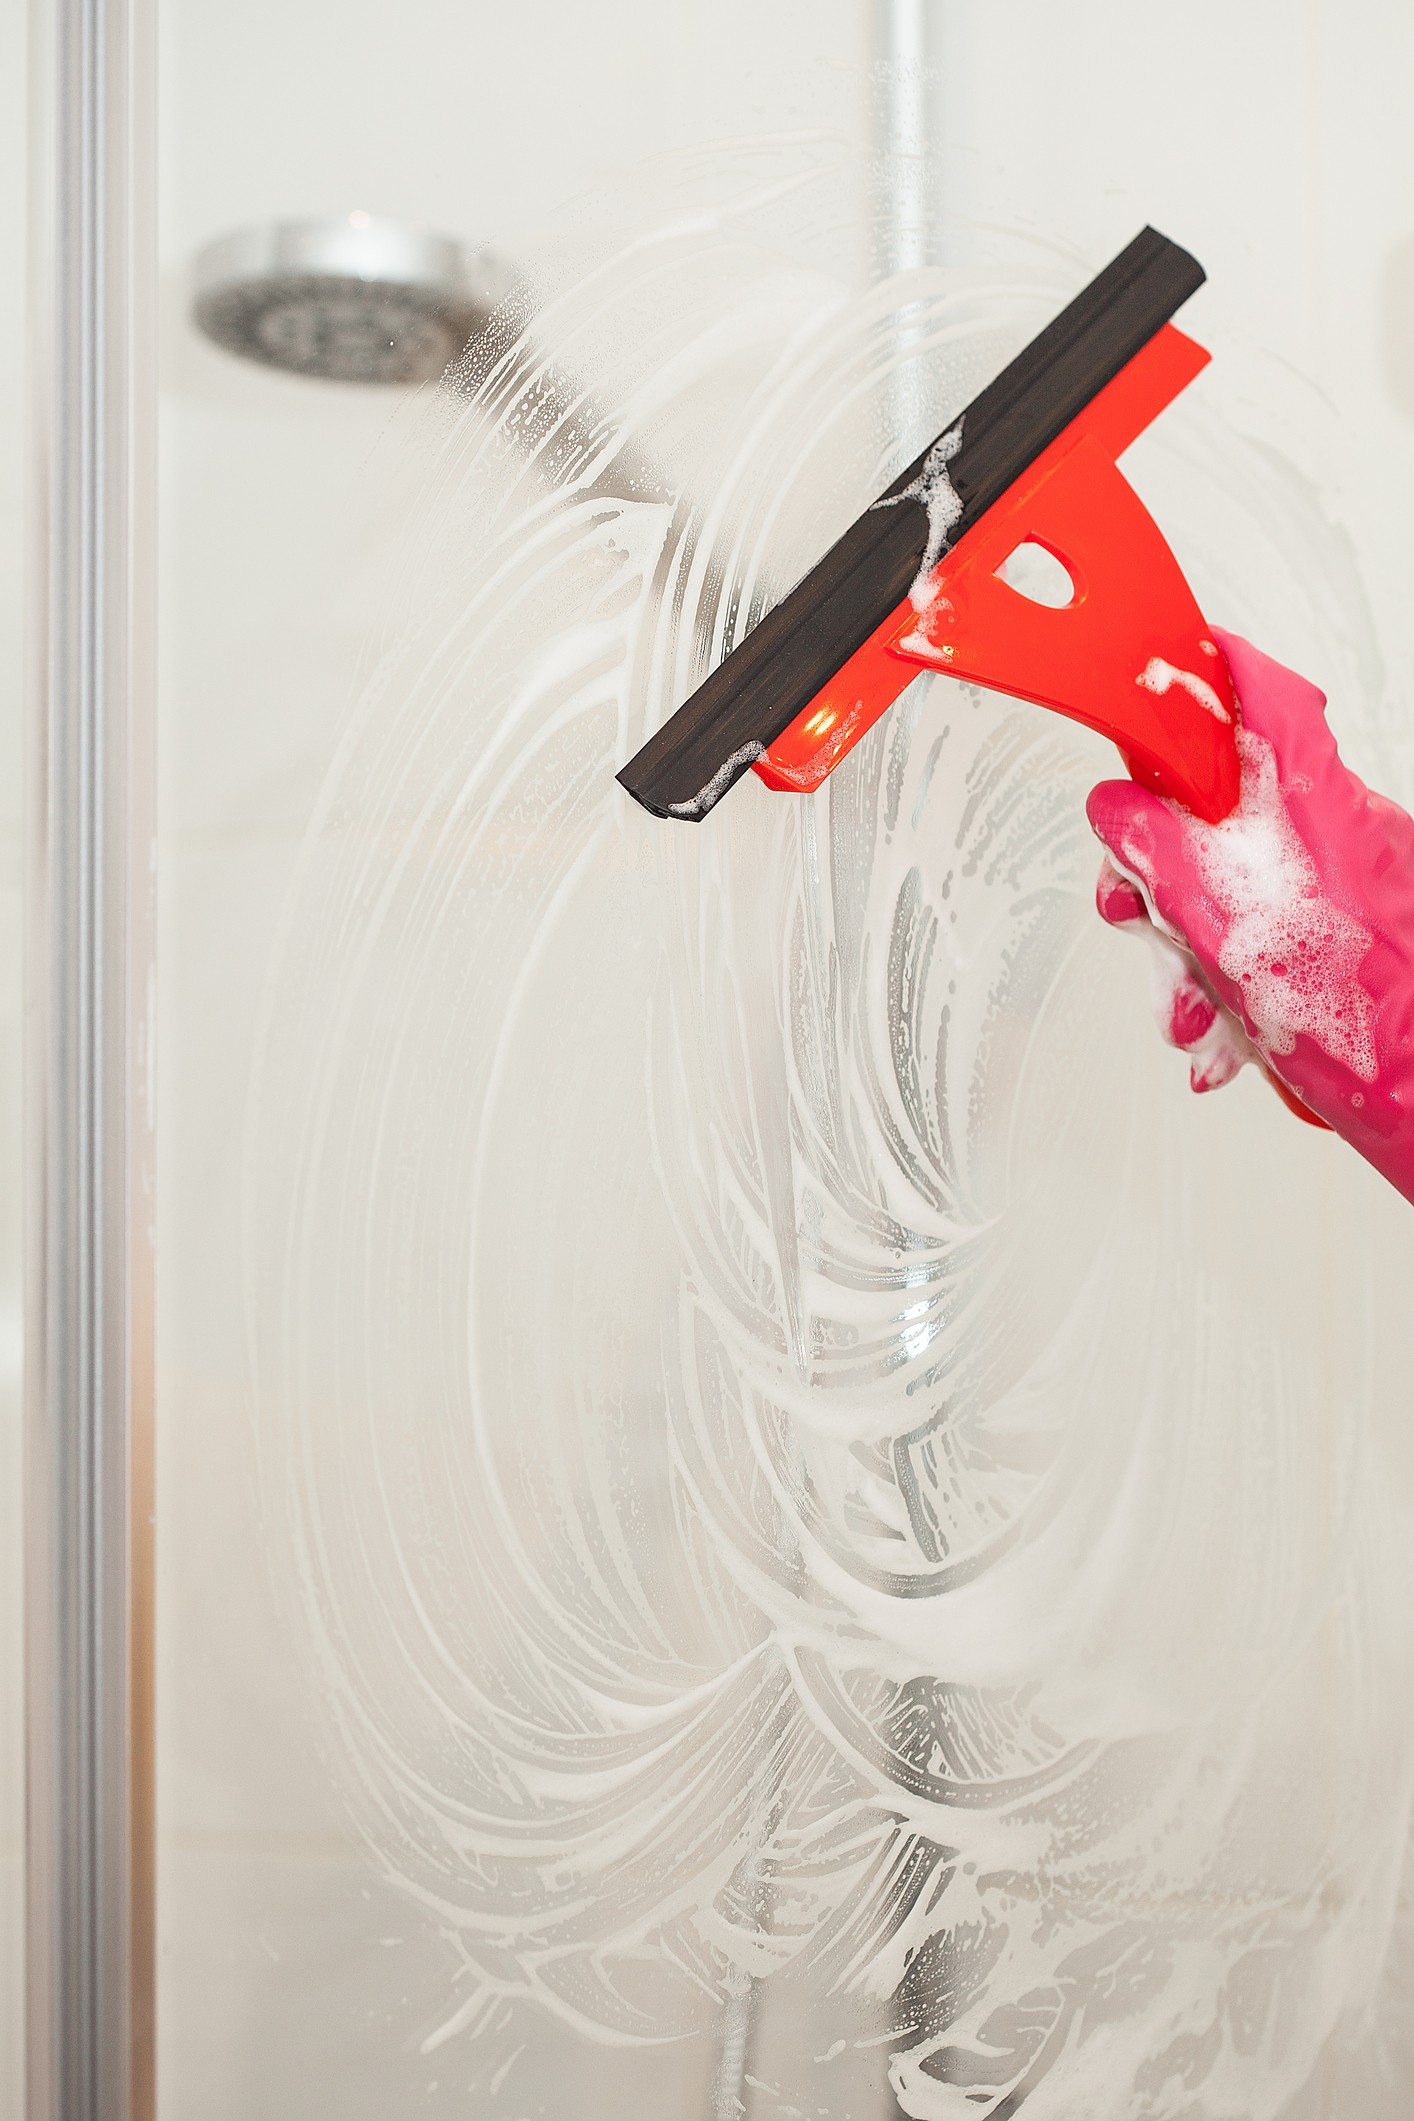 Shower cleaning with squeegee